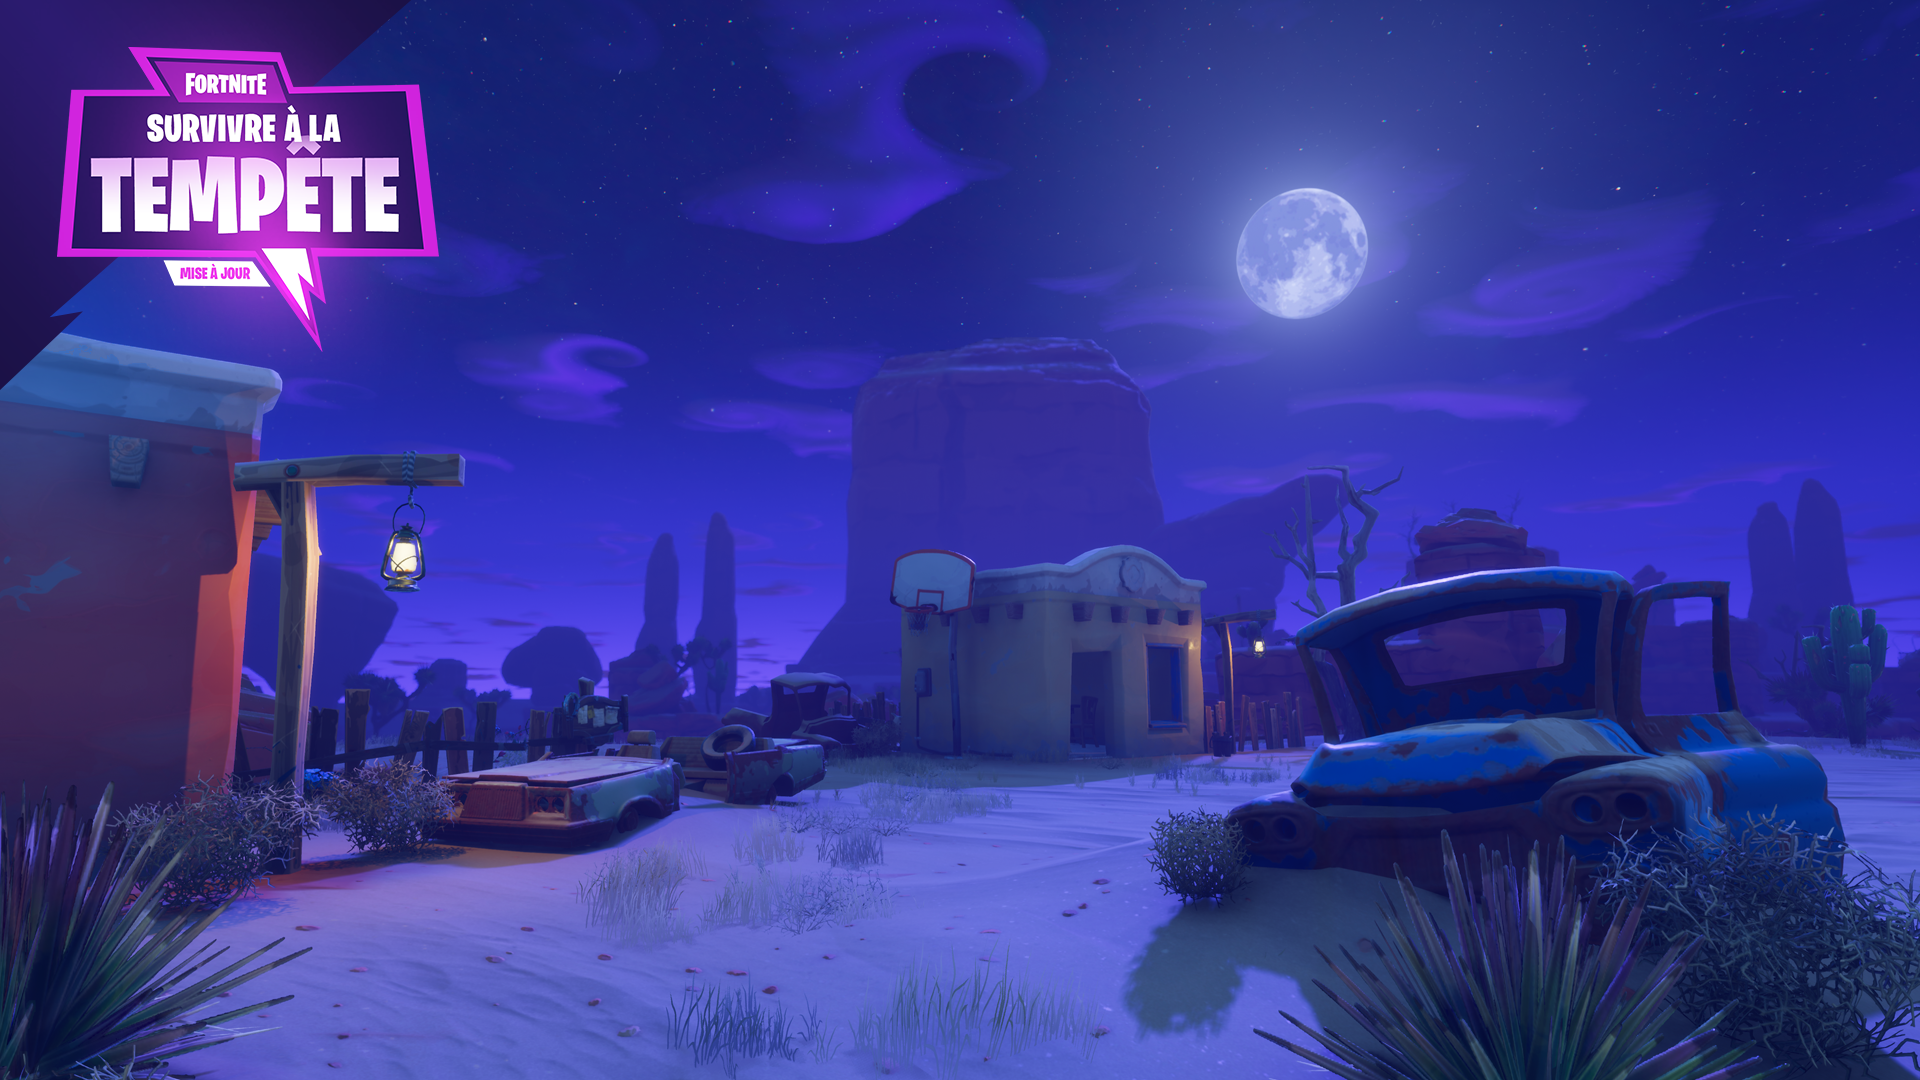 Fortnite%2Fblog%2Fsurvive-the-storm---release-notes%2FFR_2-Canny-Valley-1920x1080-25b701d70ec3fa6a05e7756eba3ab51375f4c7fe